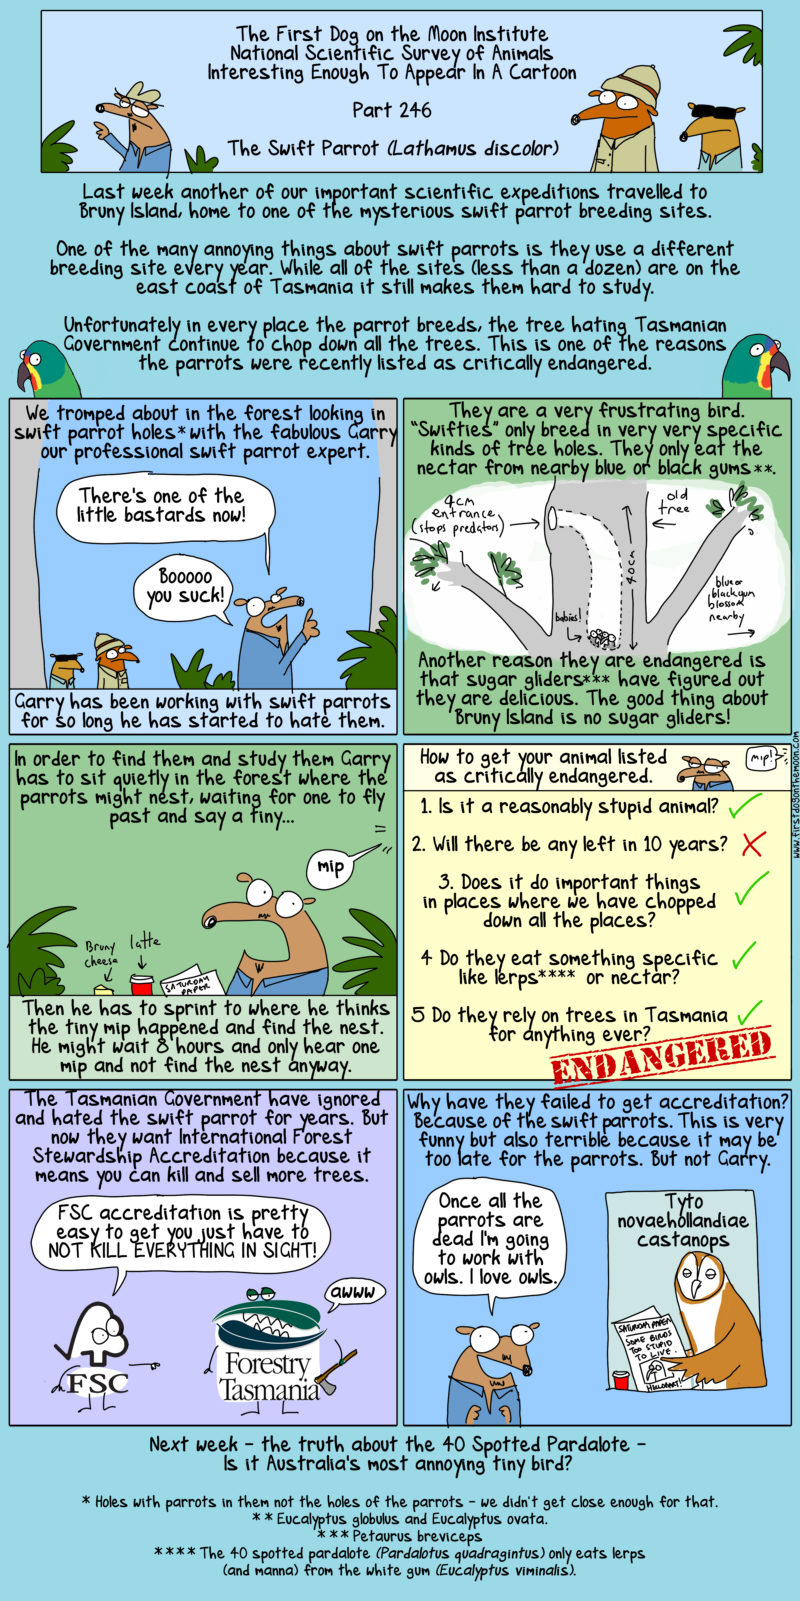 Swift Parrots: why do they suck?